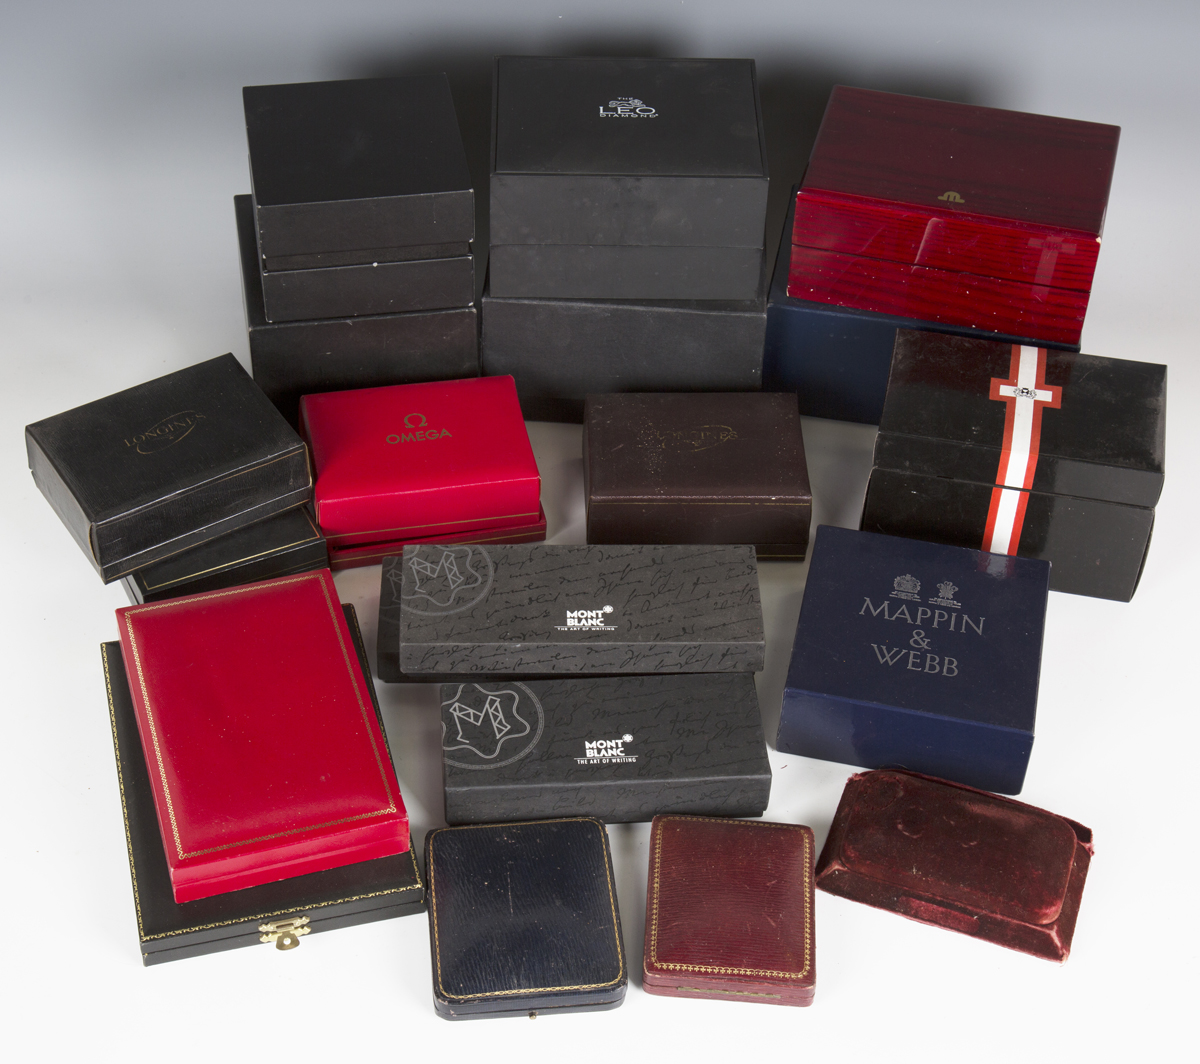 A large collection of wristwatch, pocket watch and jewellery boxes and cases, including three J.W. - Image 5 of 6